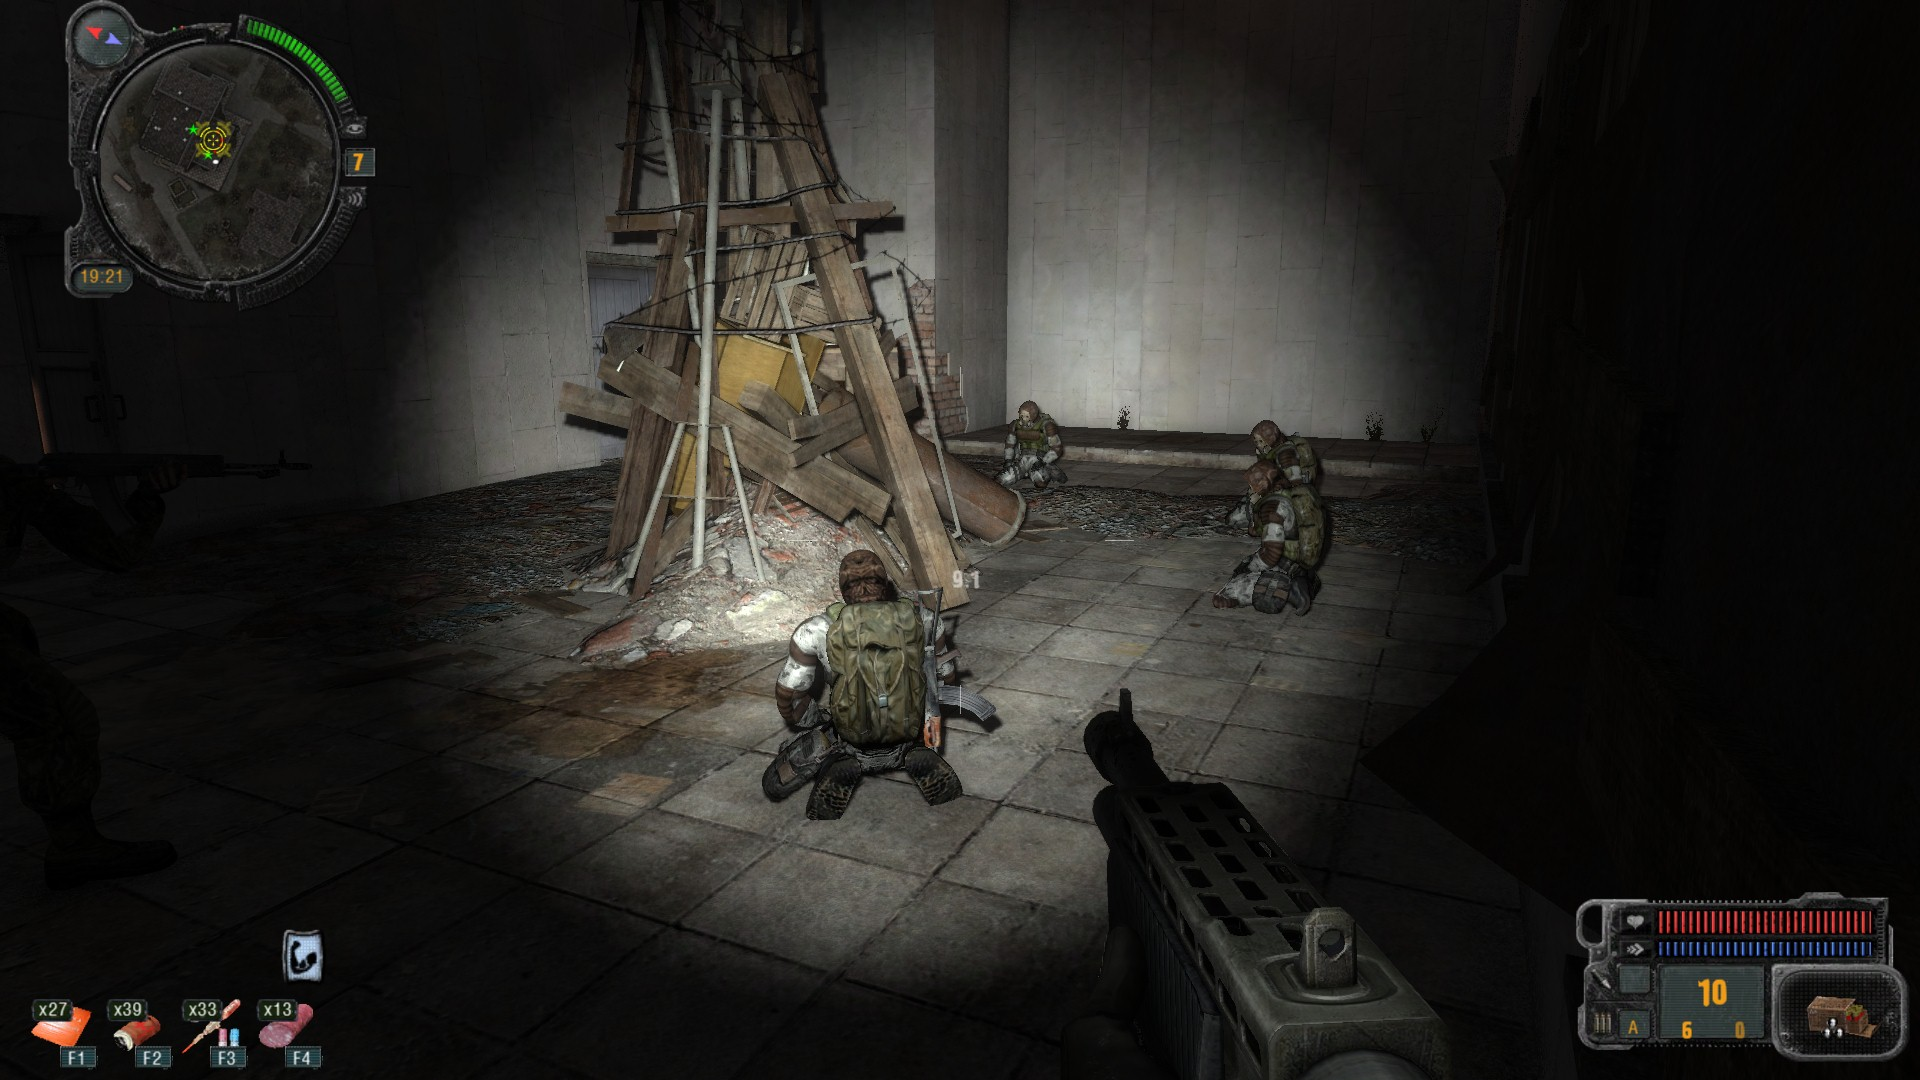 S.T.A.L.K.E.R.: Call of Pripyat is coming in February 2010